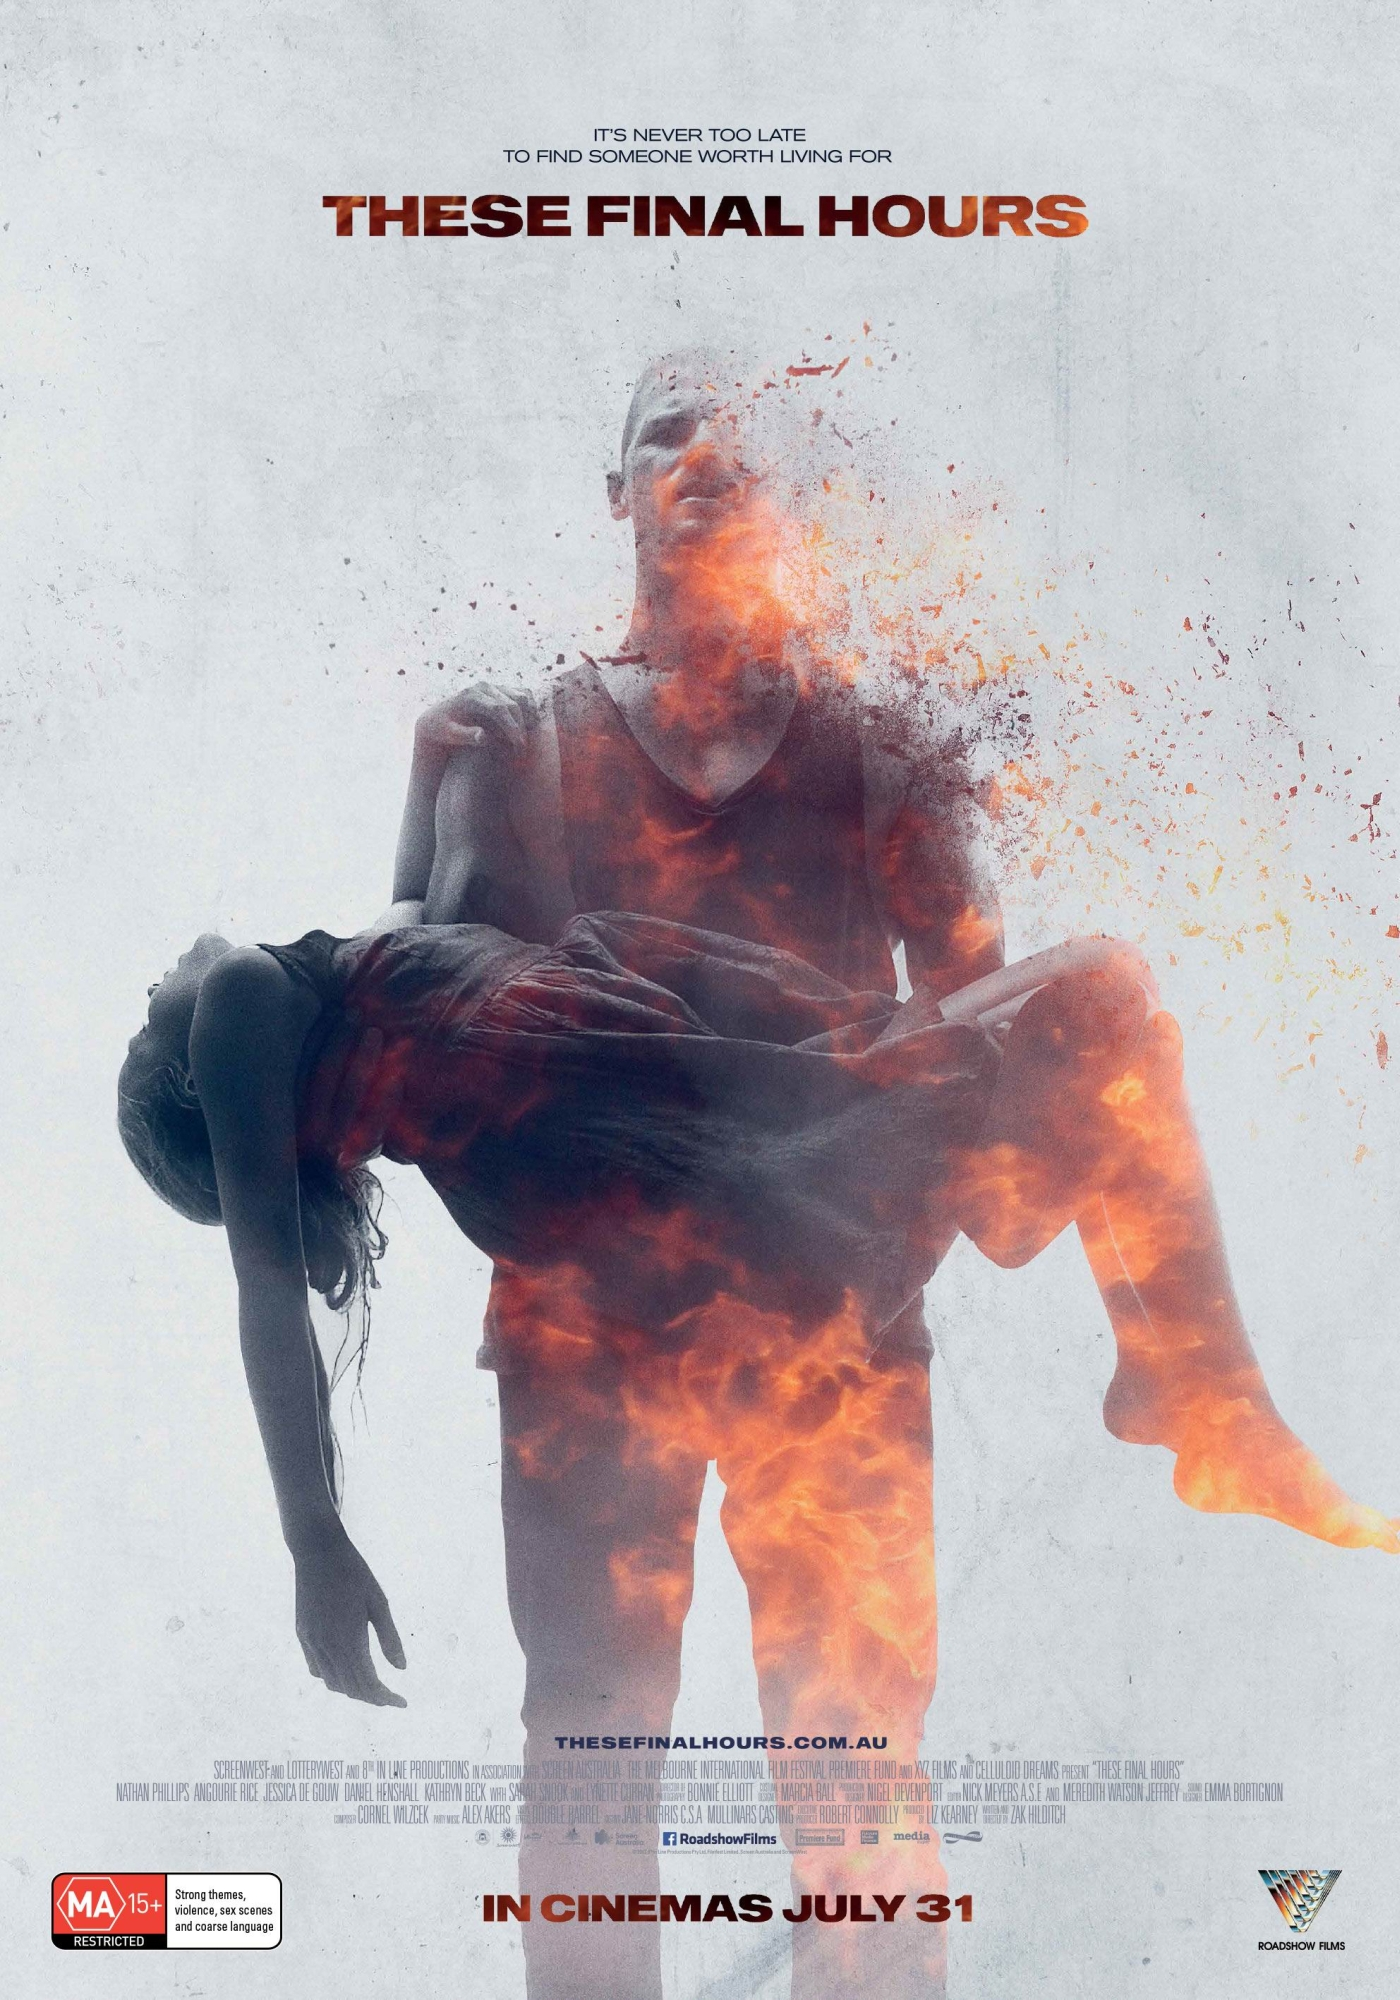 Win tickets to These Final Hours